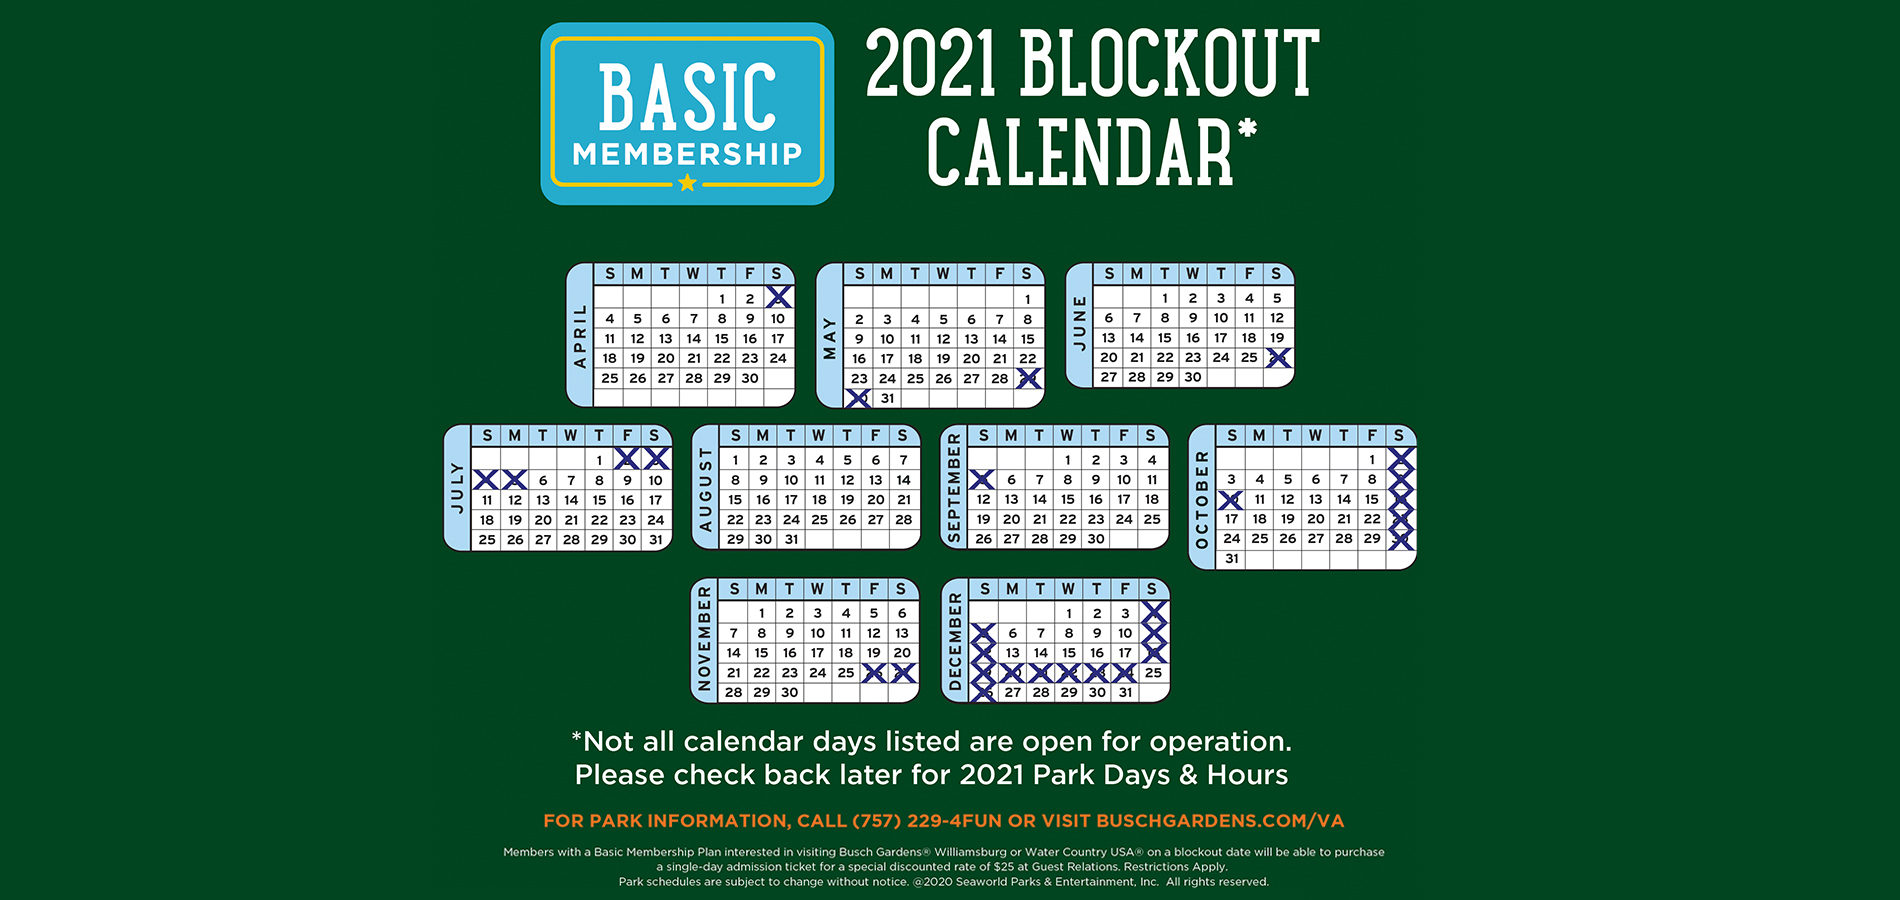 2021 Blockout Calendar for Basic Memberships